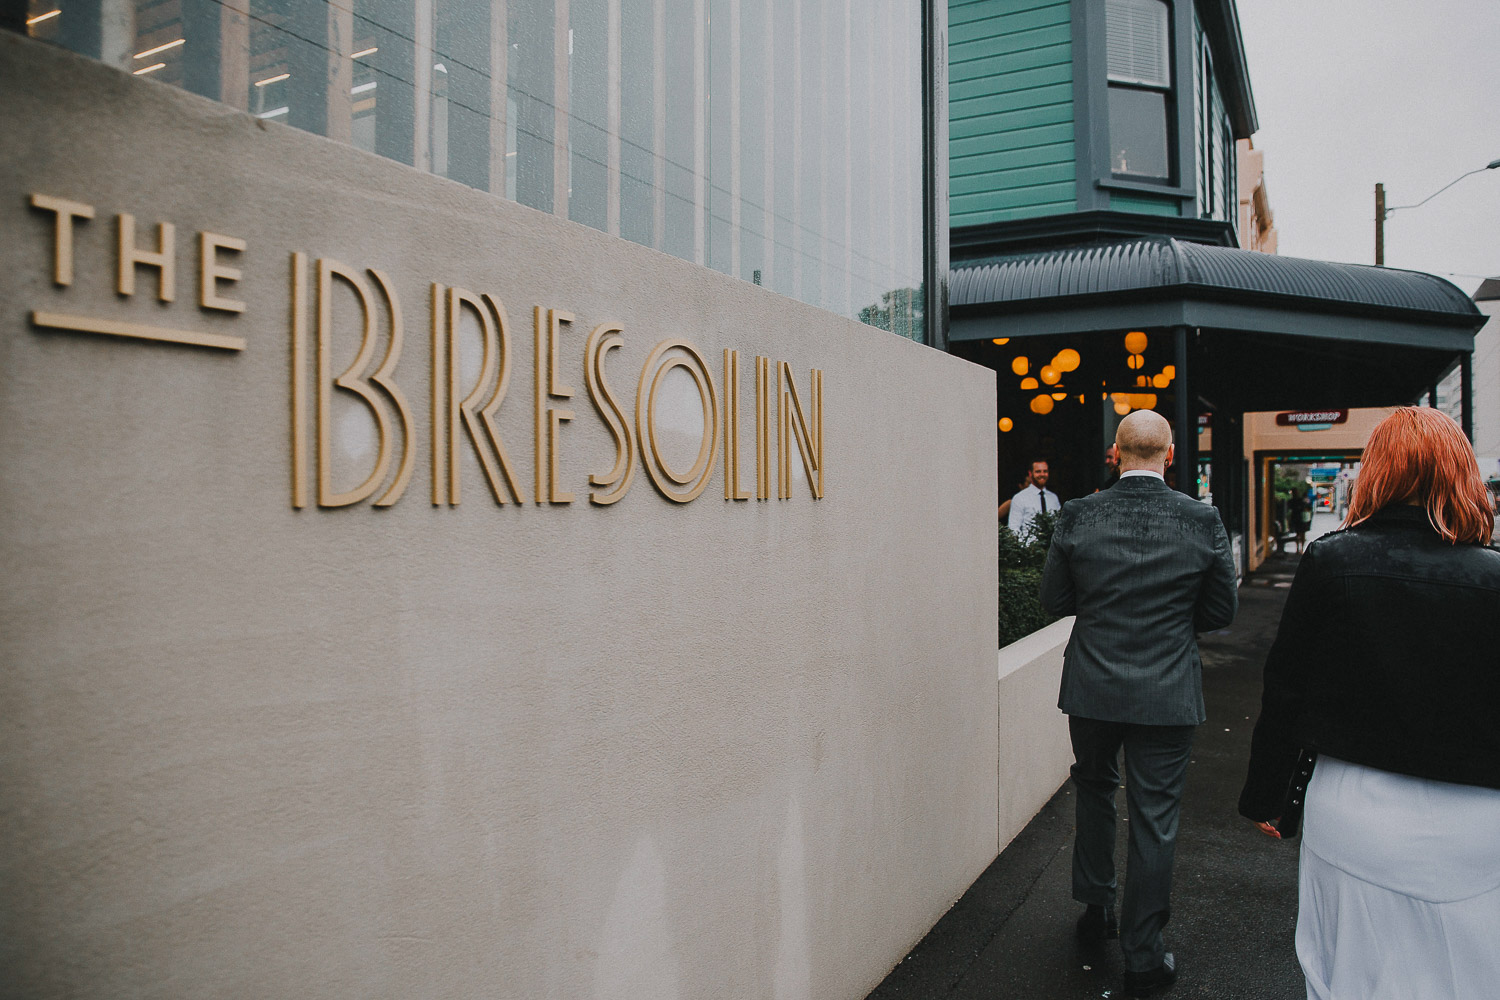 Wedding at the Bresolin restaurant